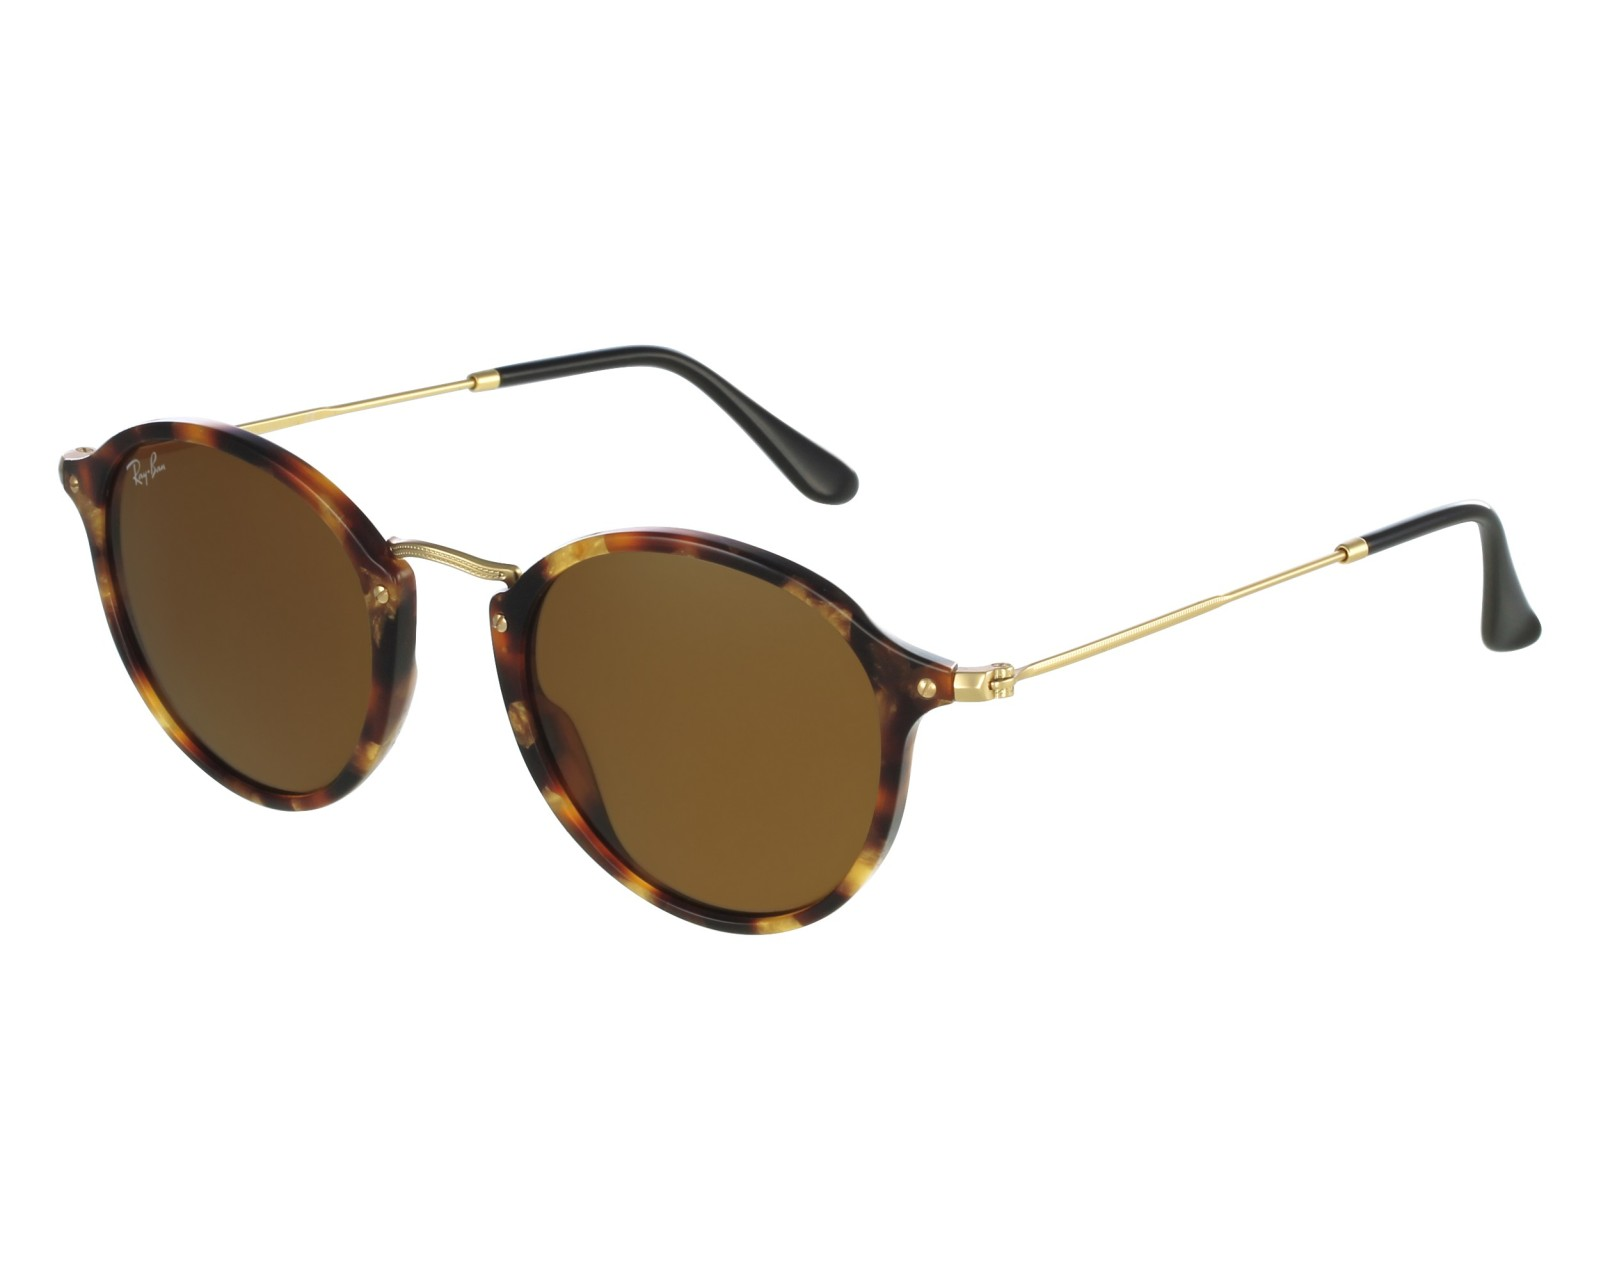 559606b0e5 Sunglasses Ray-Ban RB-2447 1160 49-21 Brown Gold front view